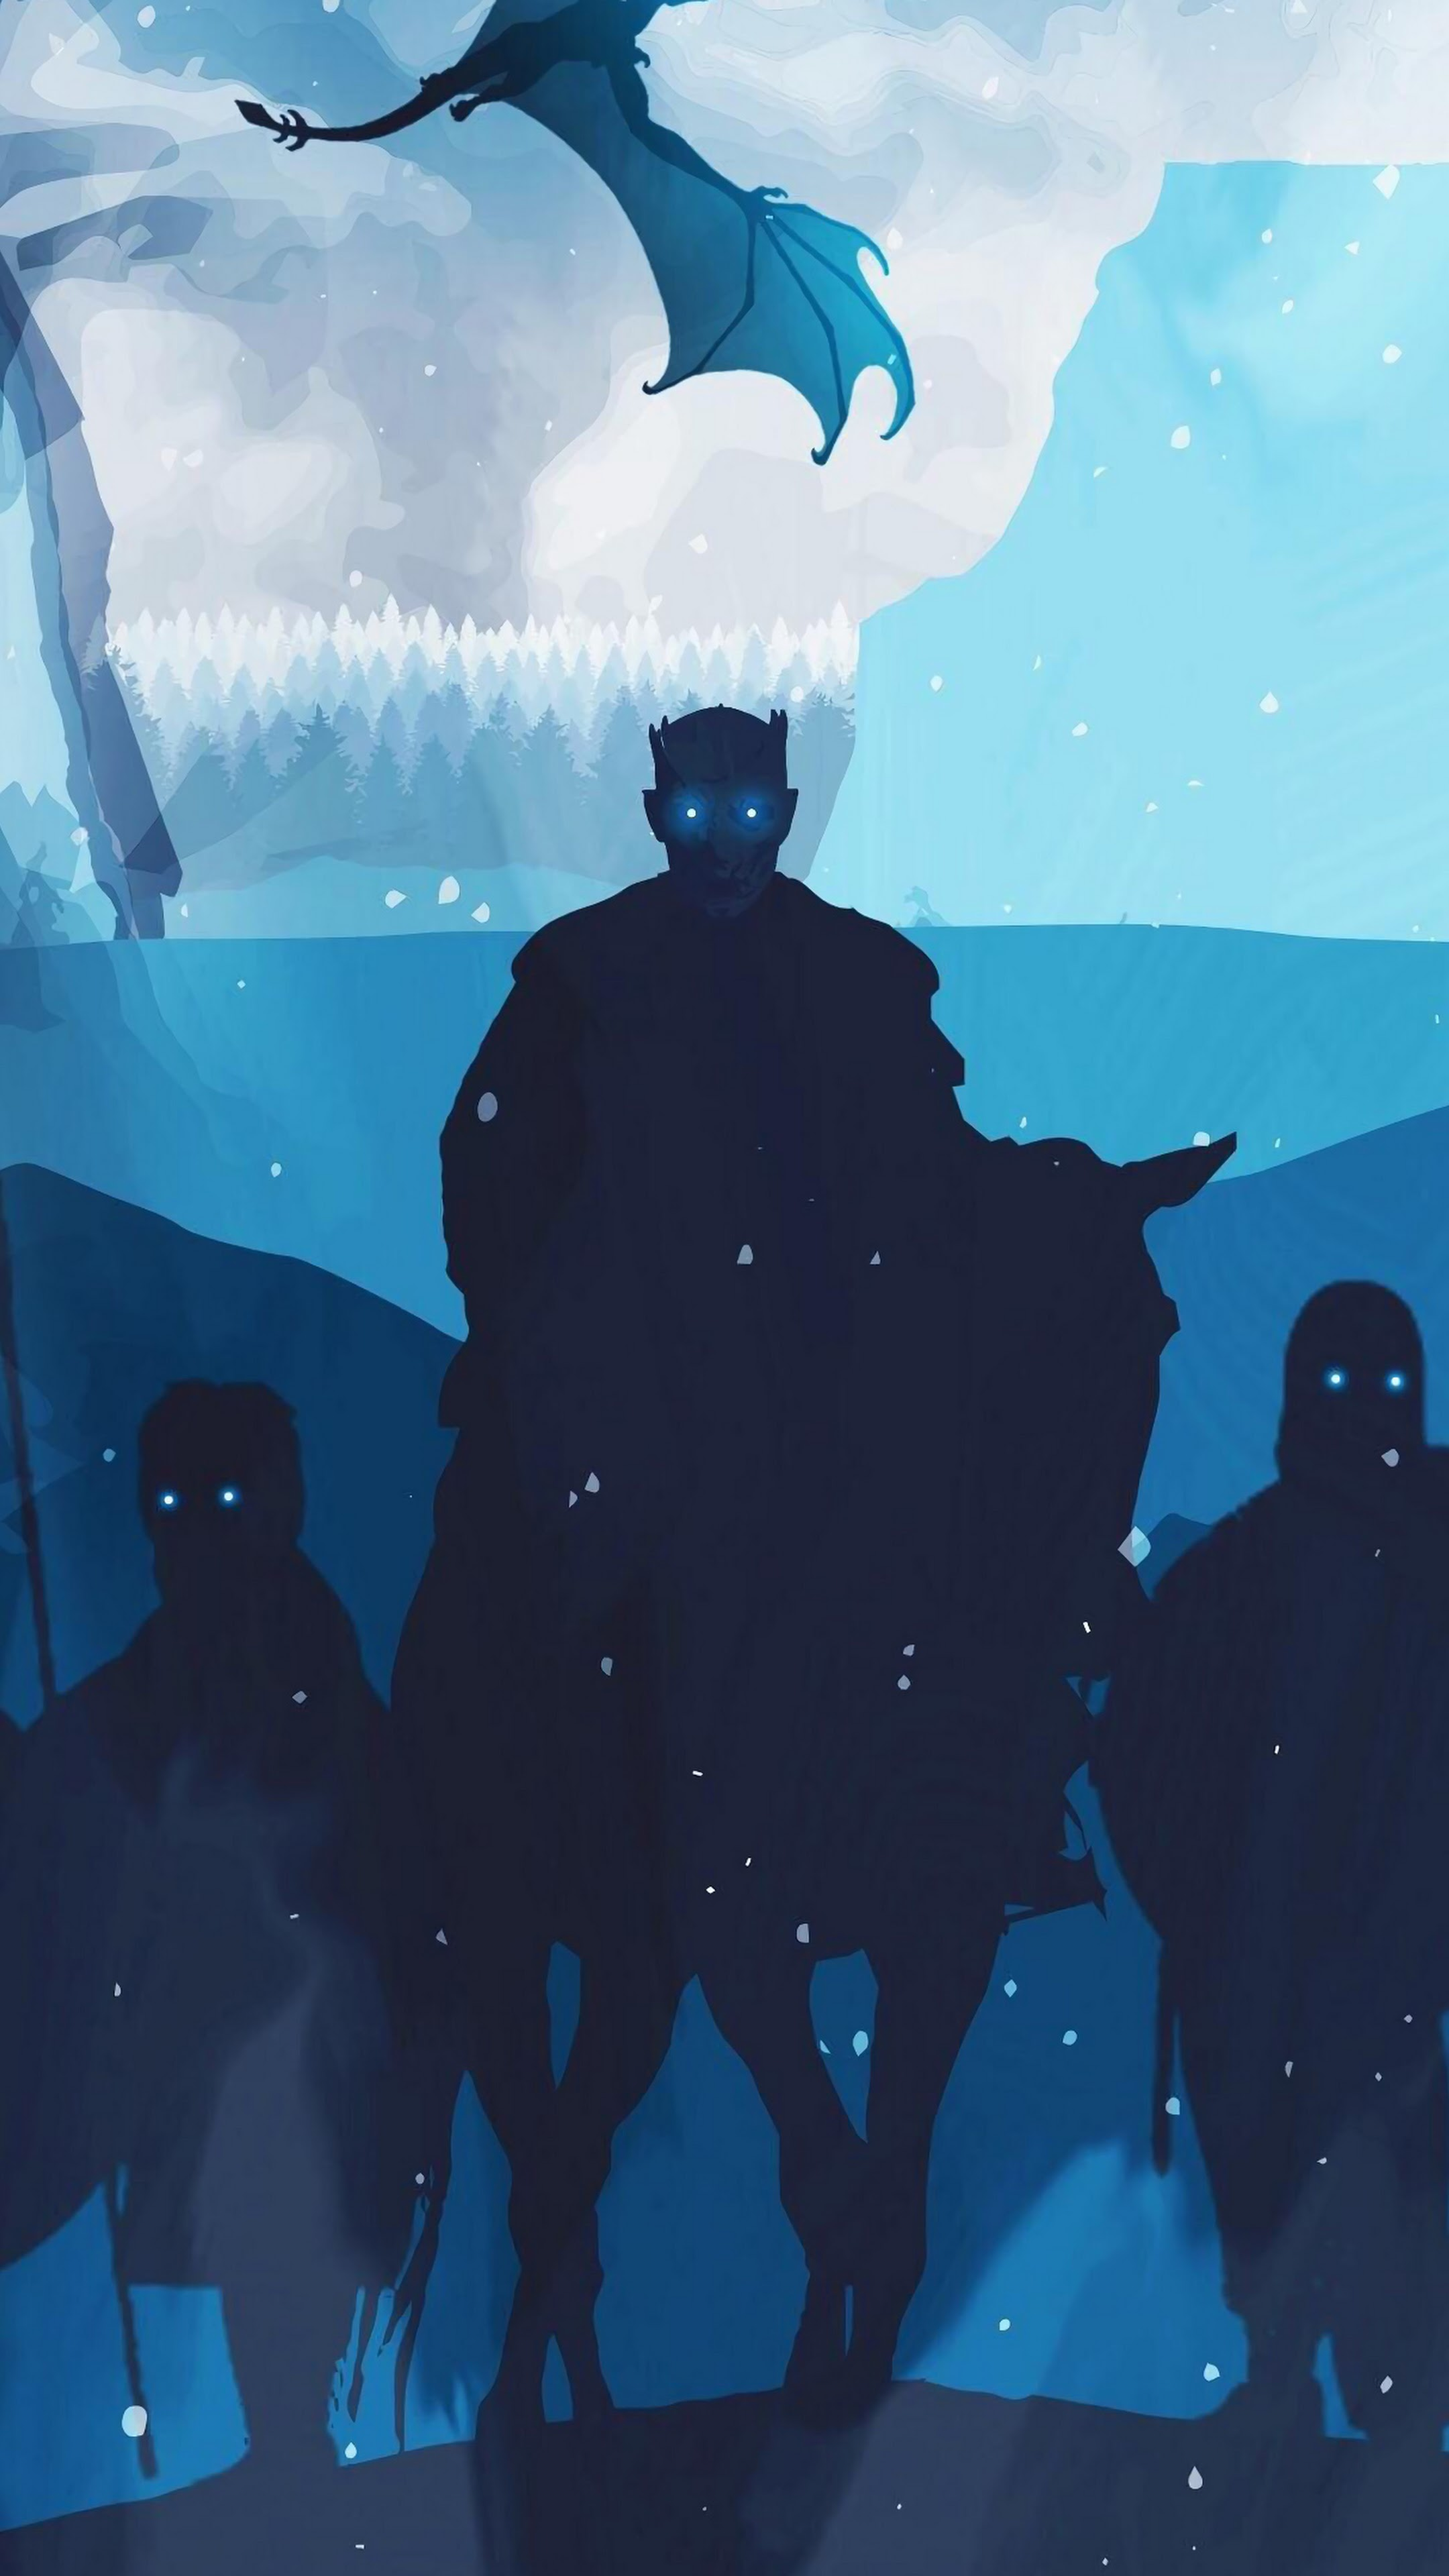 Night King White Walkers Army Minimalist Game Of Thrones 4k